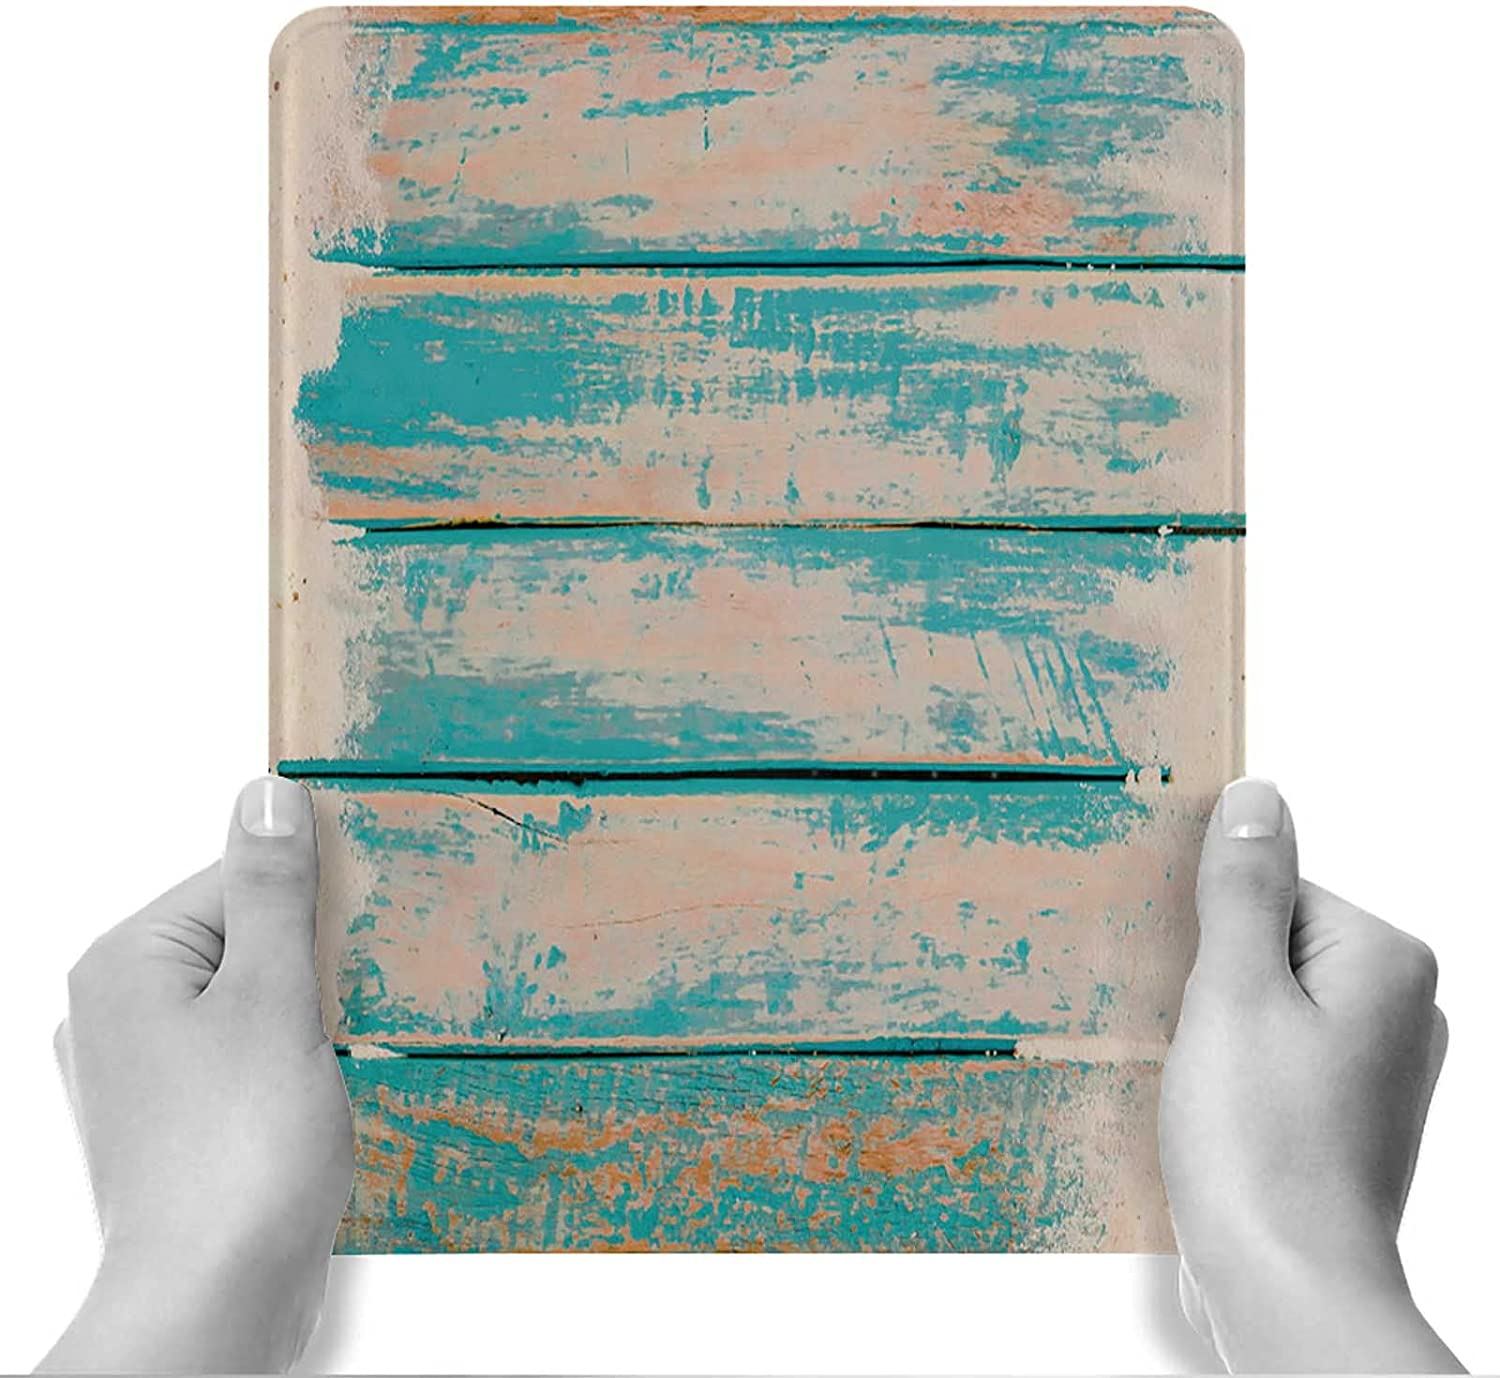 Case for iPad Pro 10.5 inch ) 2021 A1709 2017( Beach A1701 Backg SEAL limited product